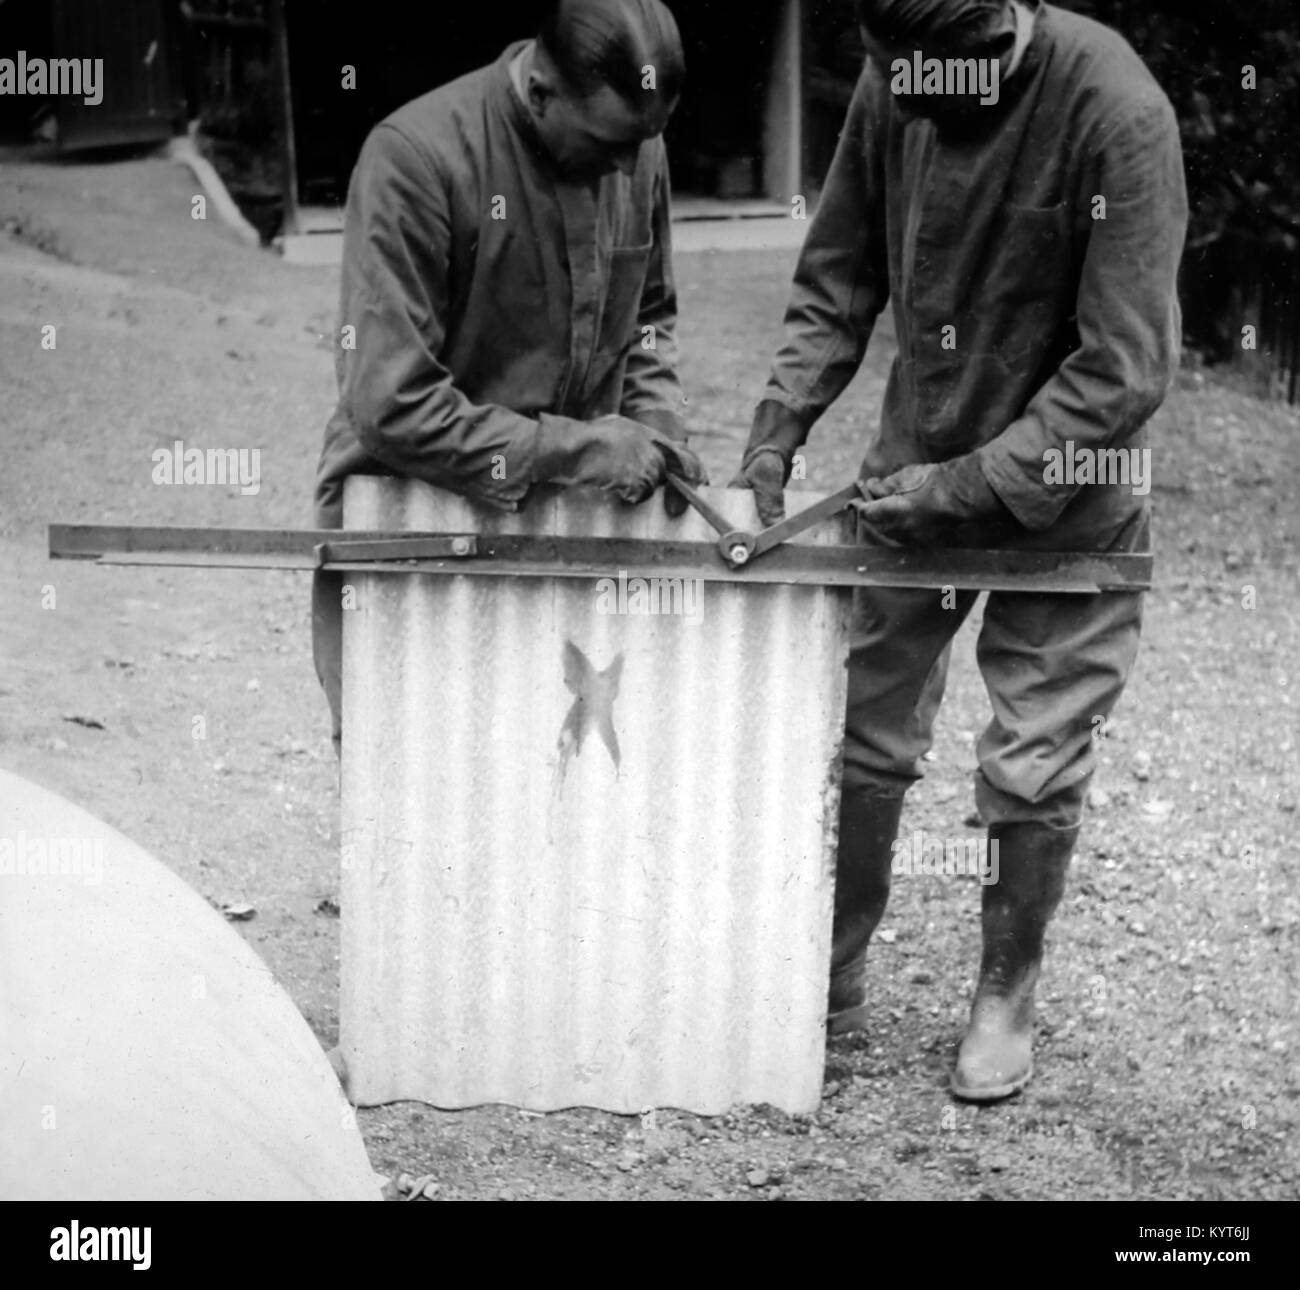 Building an Anderson shelter, ARP training exercise during WW2 - Stock Image